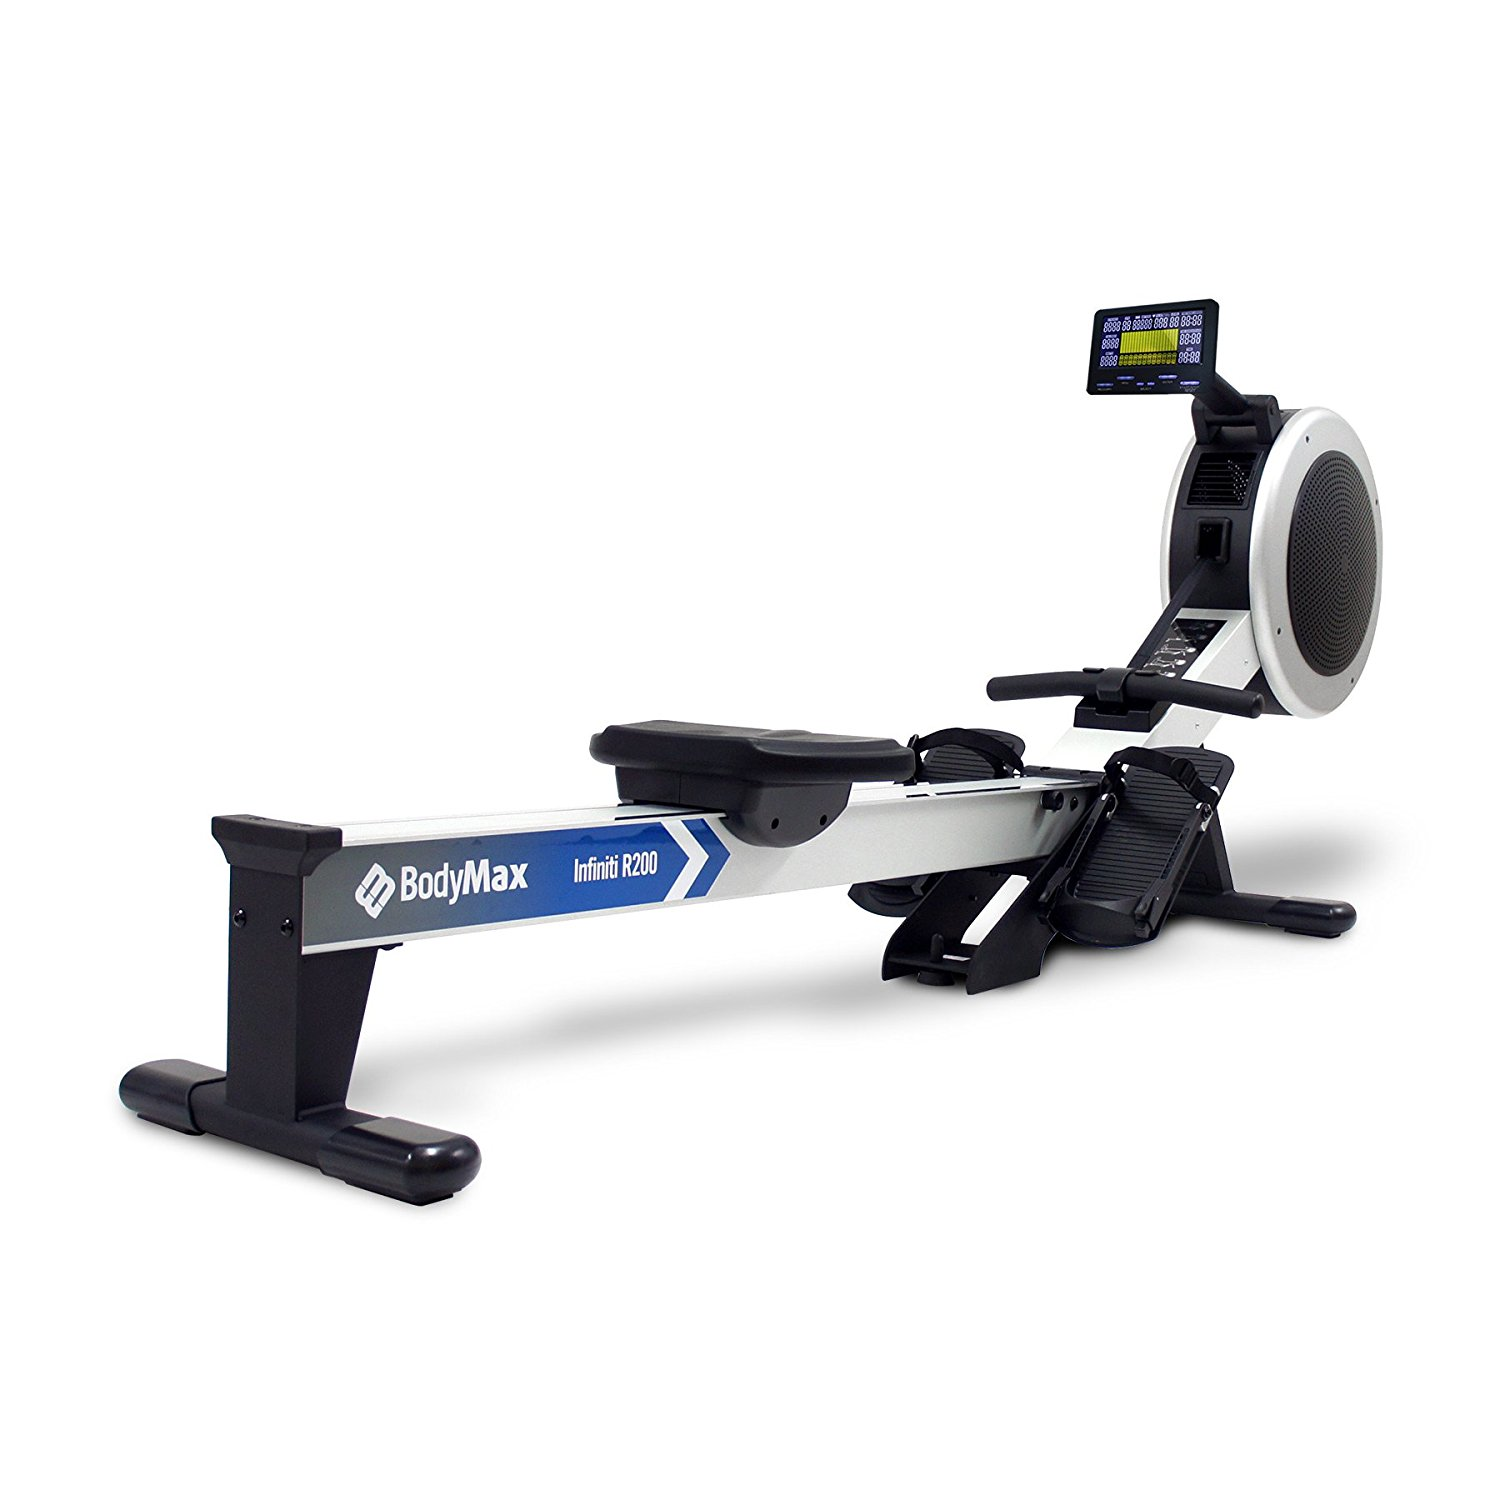 Bodymax Infiniti R200 Rowing Machine